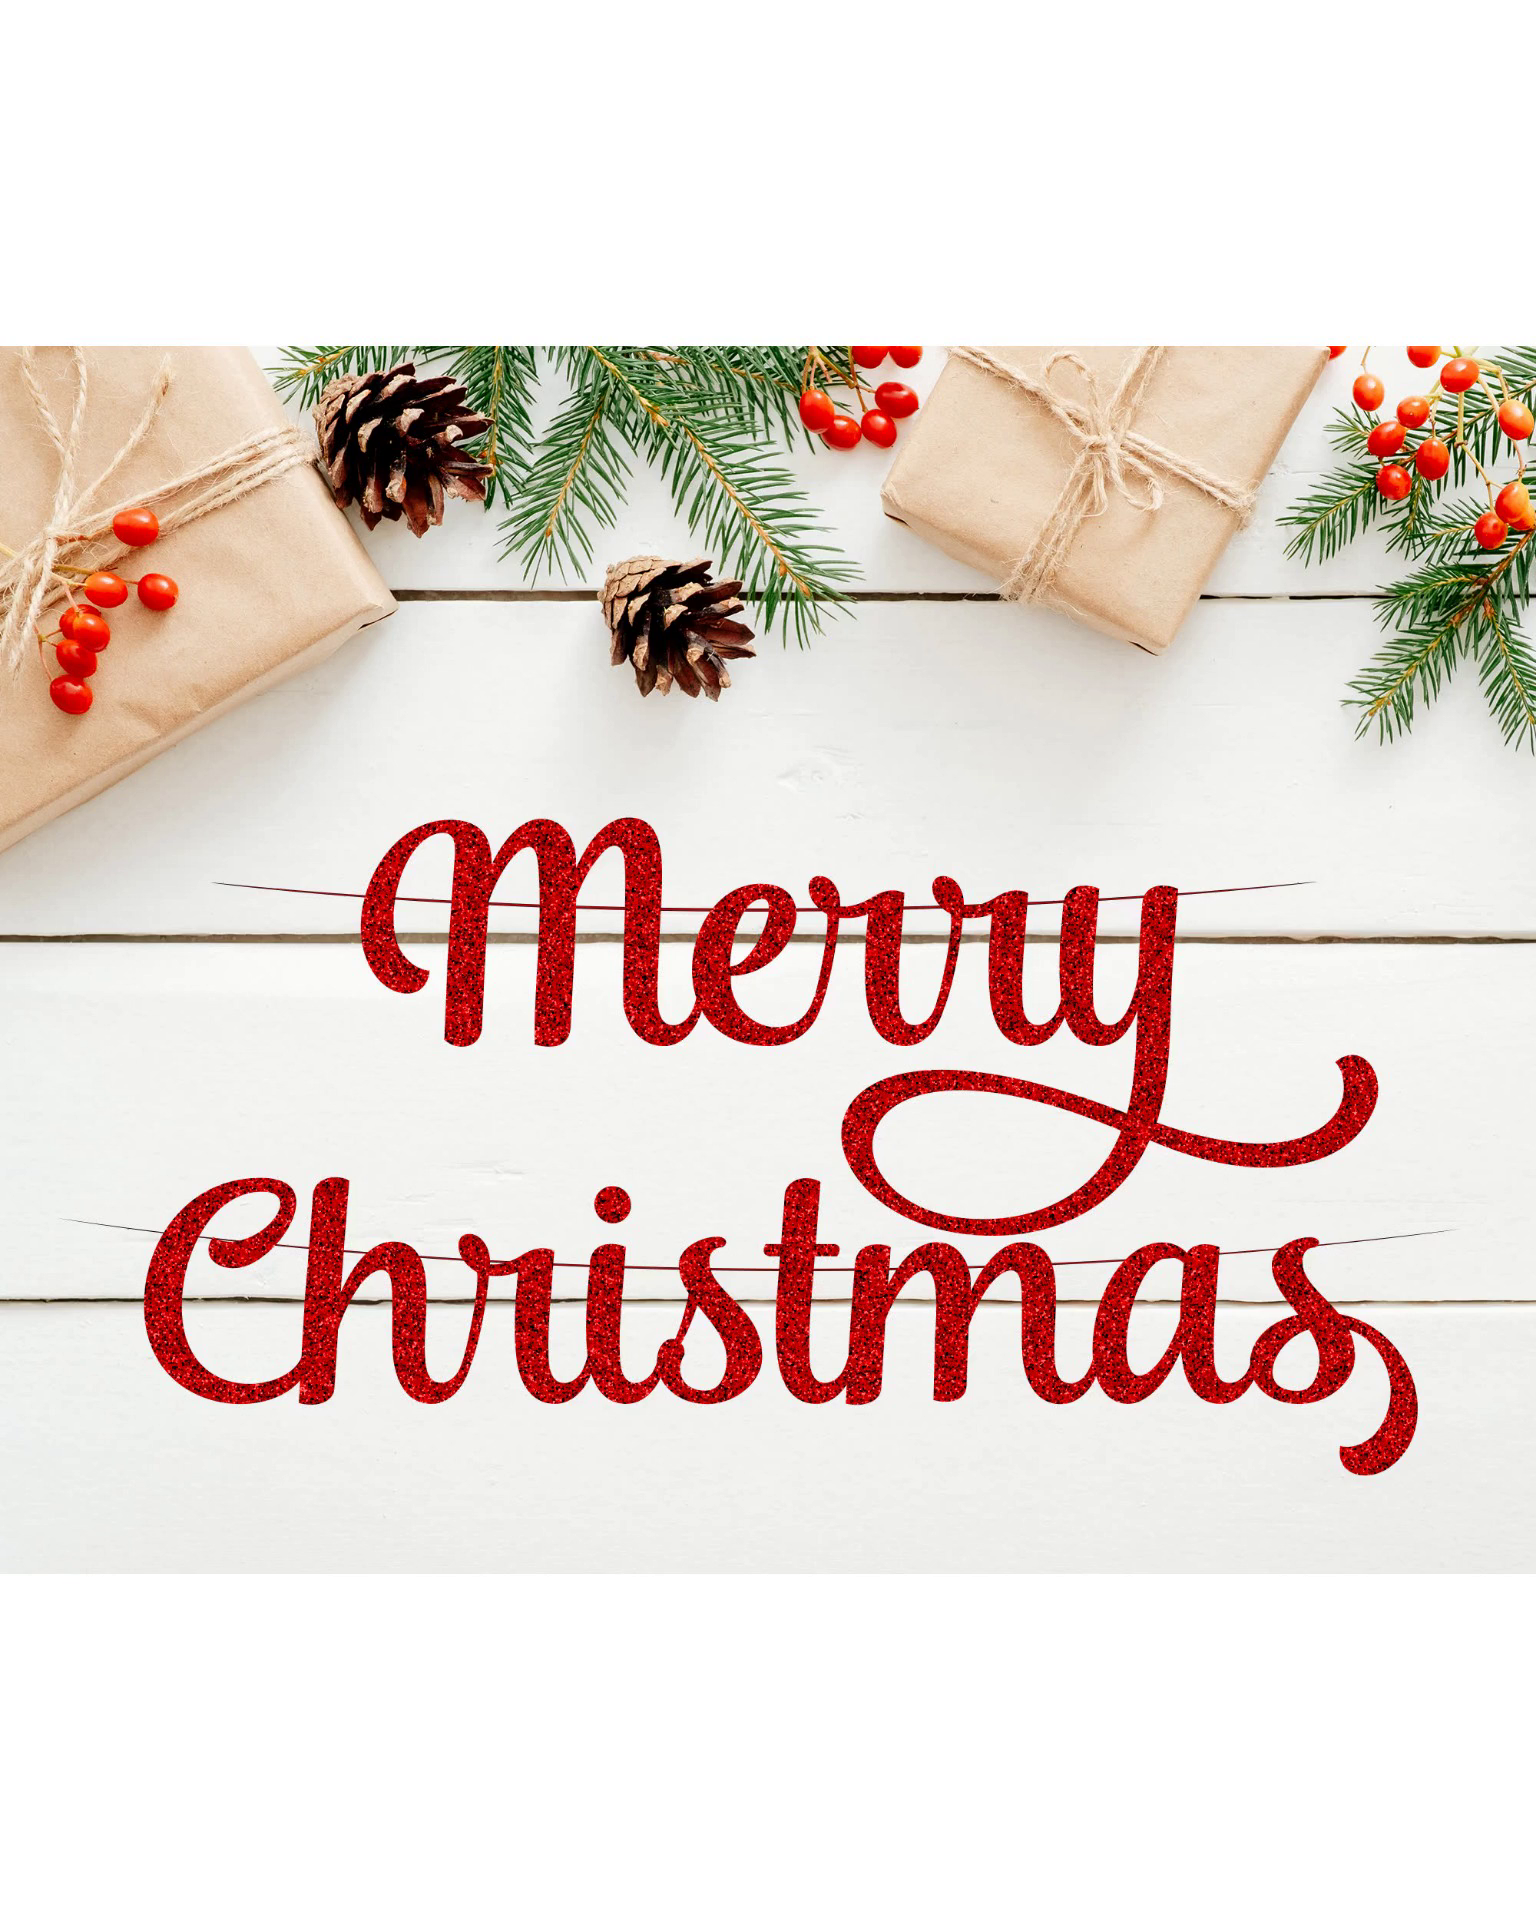 Merry Christmas Banner Christmas Party Decorations Hoilday Etsy Merry Christmas Happy Holidays Christmas Banners Merry Christmas Banner